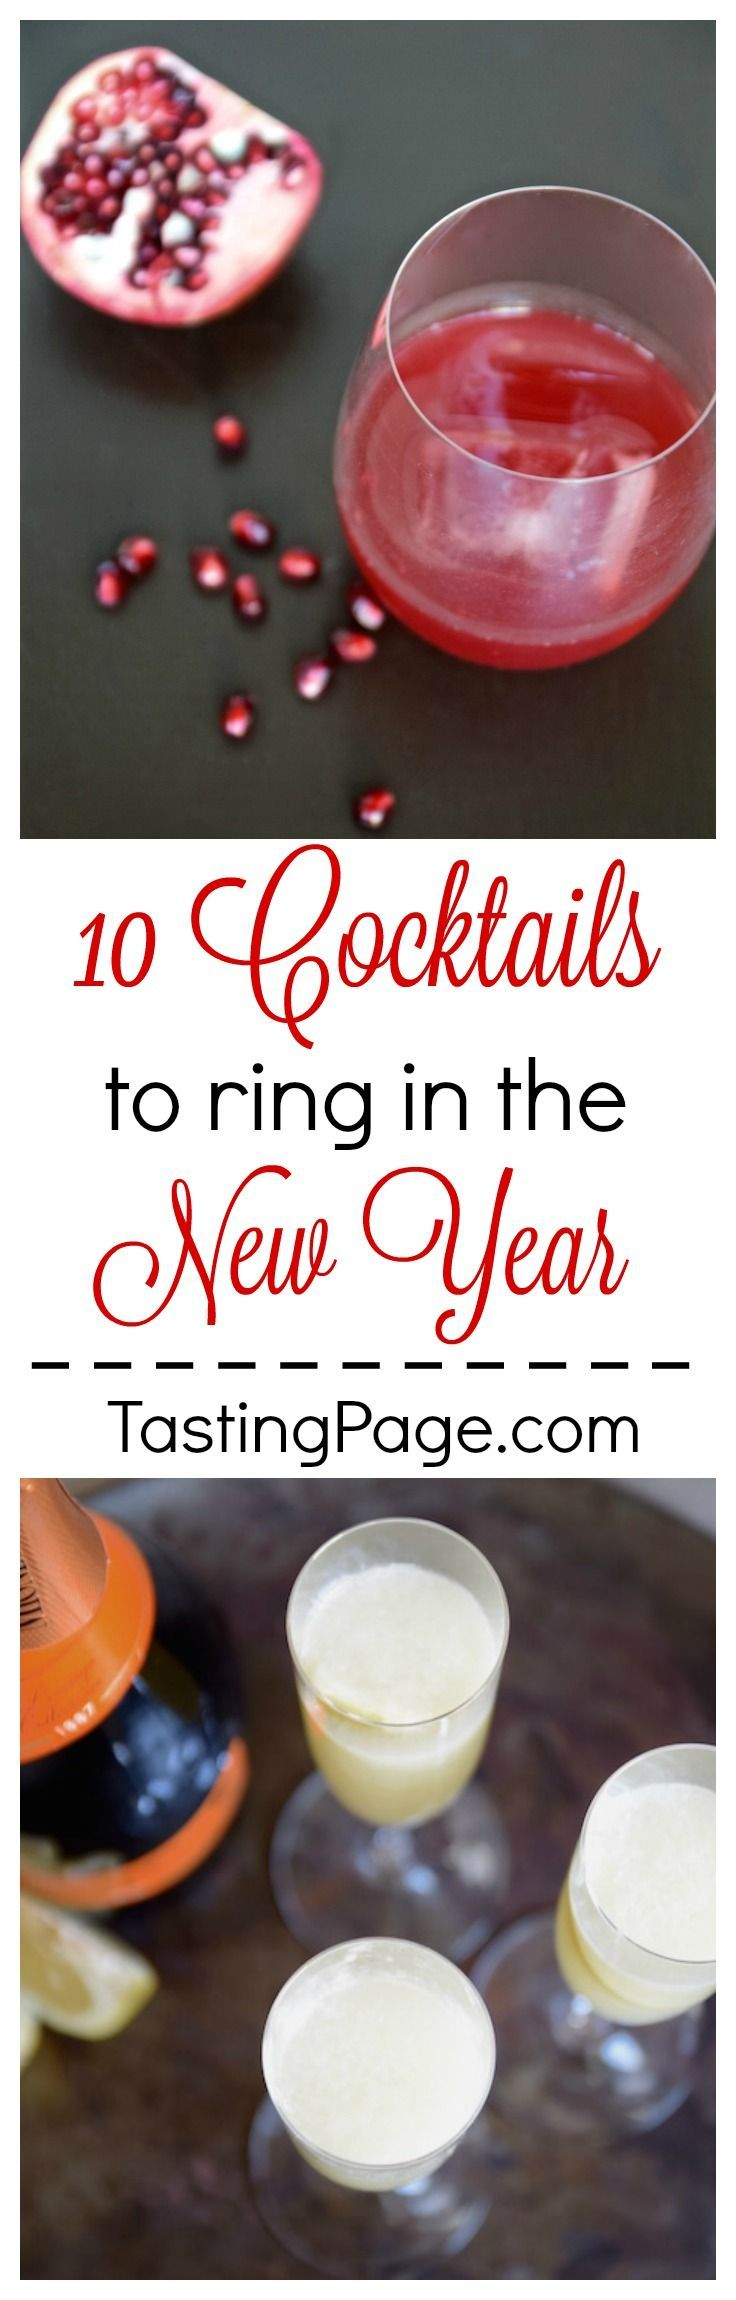 New Year's Cocktails - 10 healthier cocktails to ring in the new year. No refined sugar added to battle headaches later!   TastingPage.com #cocktails #newyearseve #drink